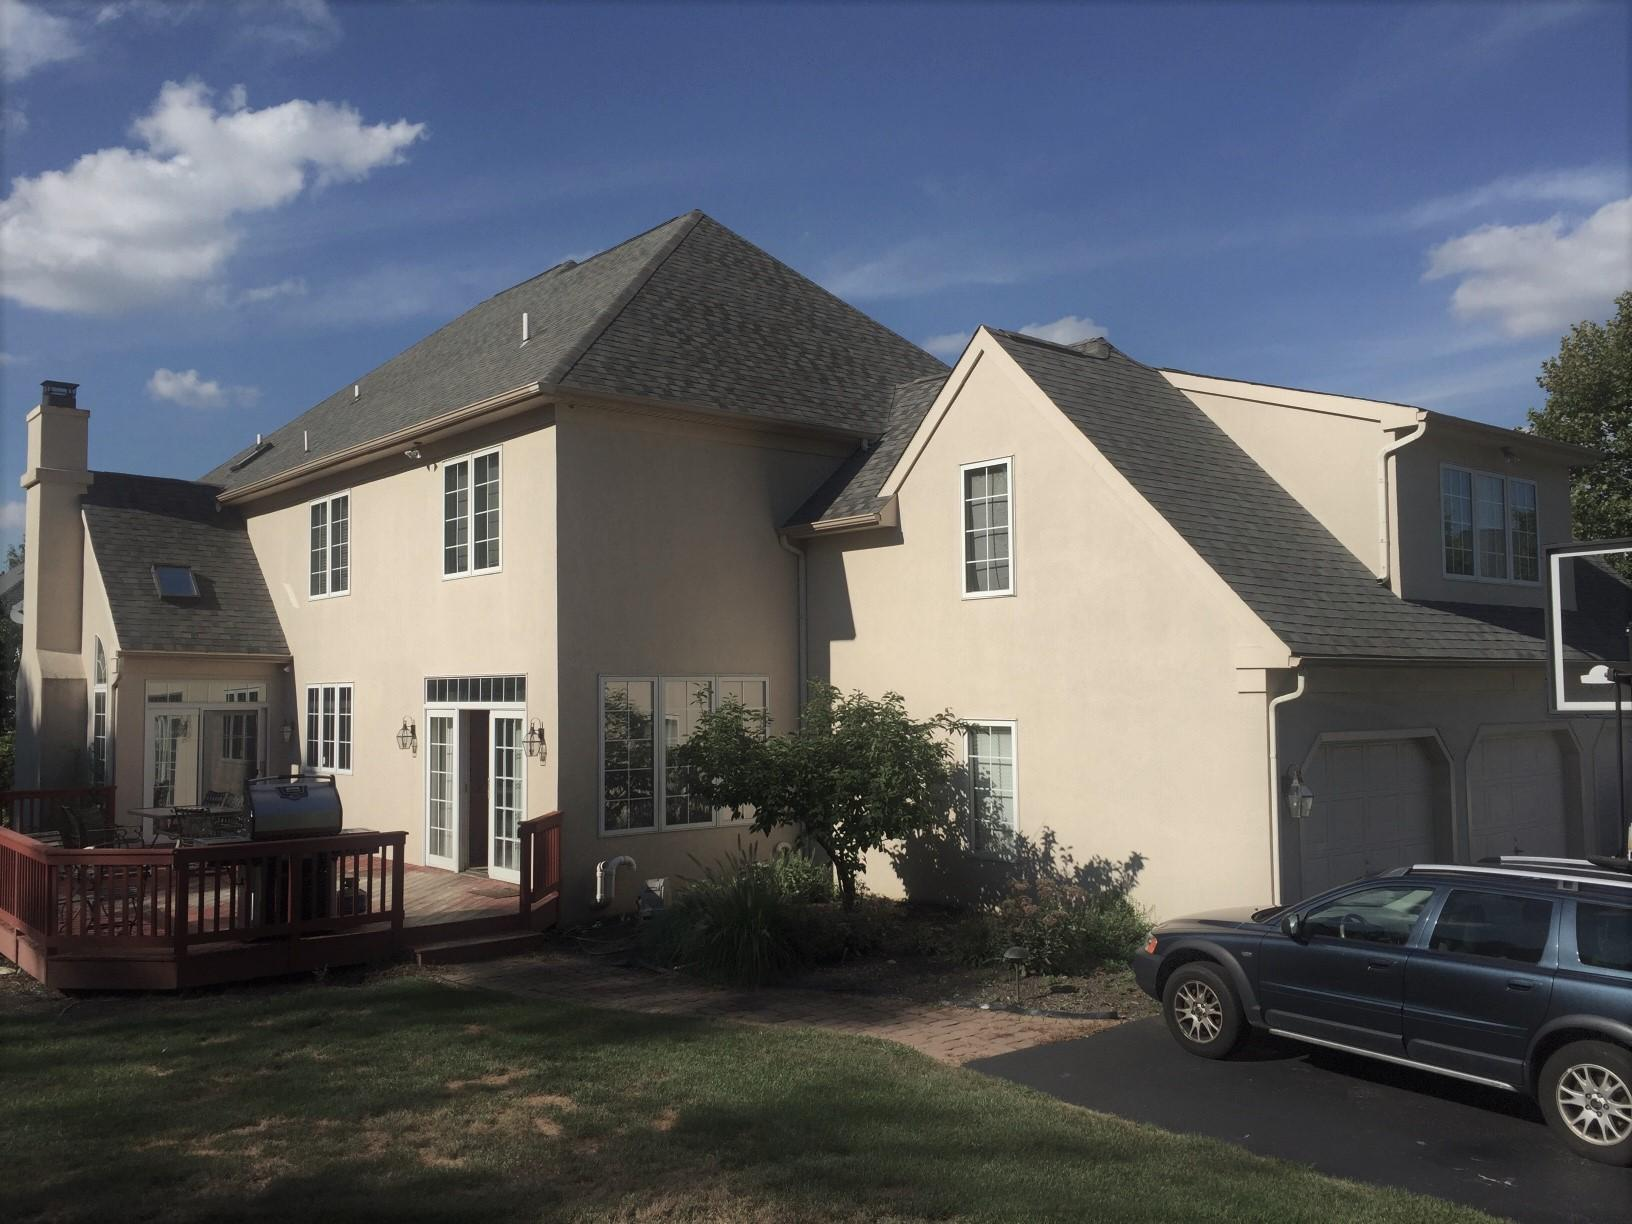 Stucco Remediation & James Hardie Siding Installation in Malvern, PA - Before Photo